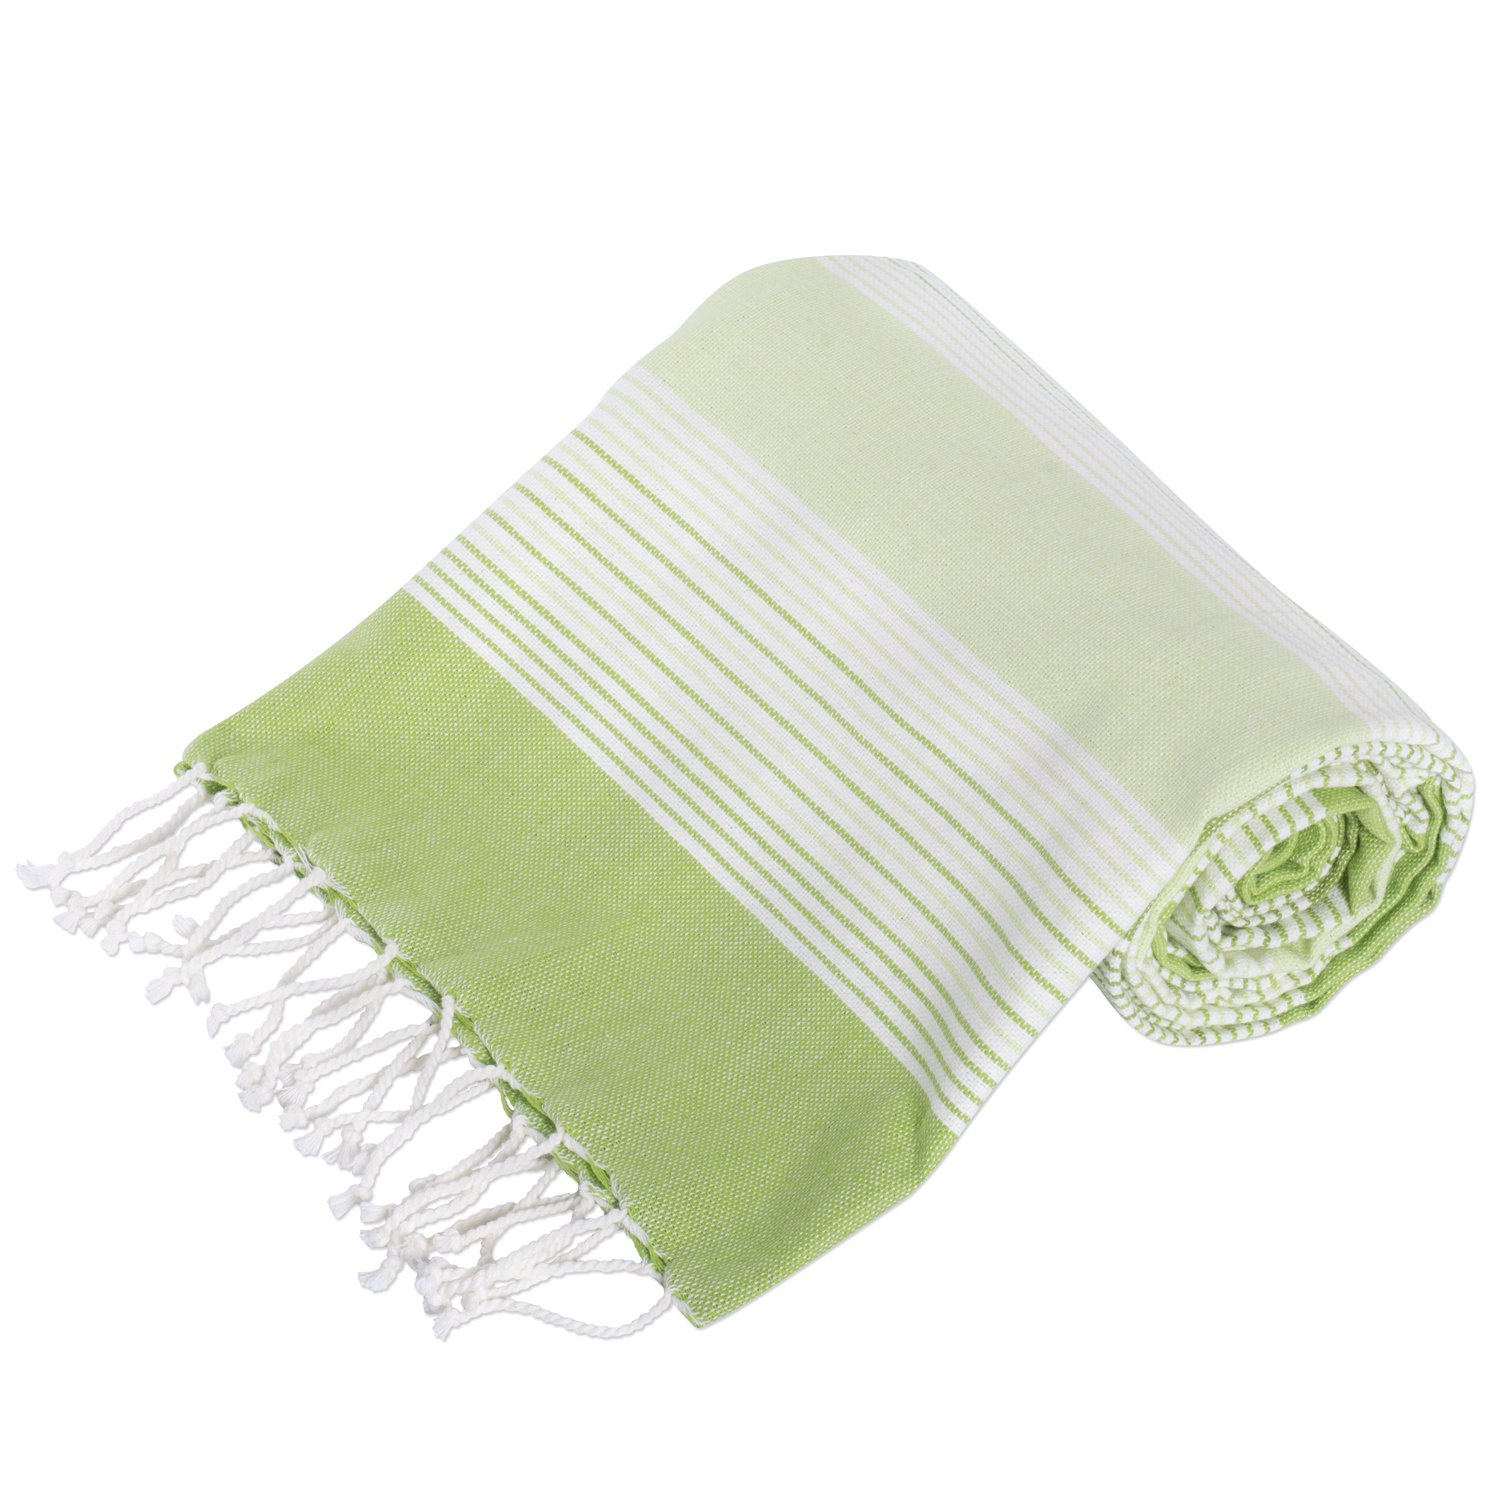 DII Peshtemal Turkish Super Soft, Absorbent, Oversized Bath Towel, Throw, Blanket Fringe for Chair, Couch, Picnic, Camping, Beach, Yoga, Pilates, Everyday Use, 39 x 78 - Green Stripe by DII